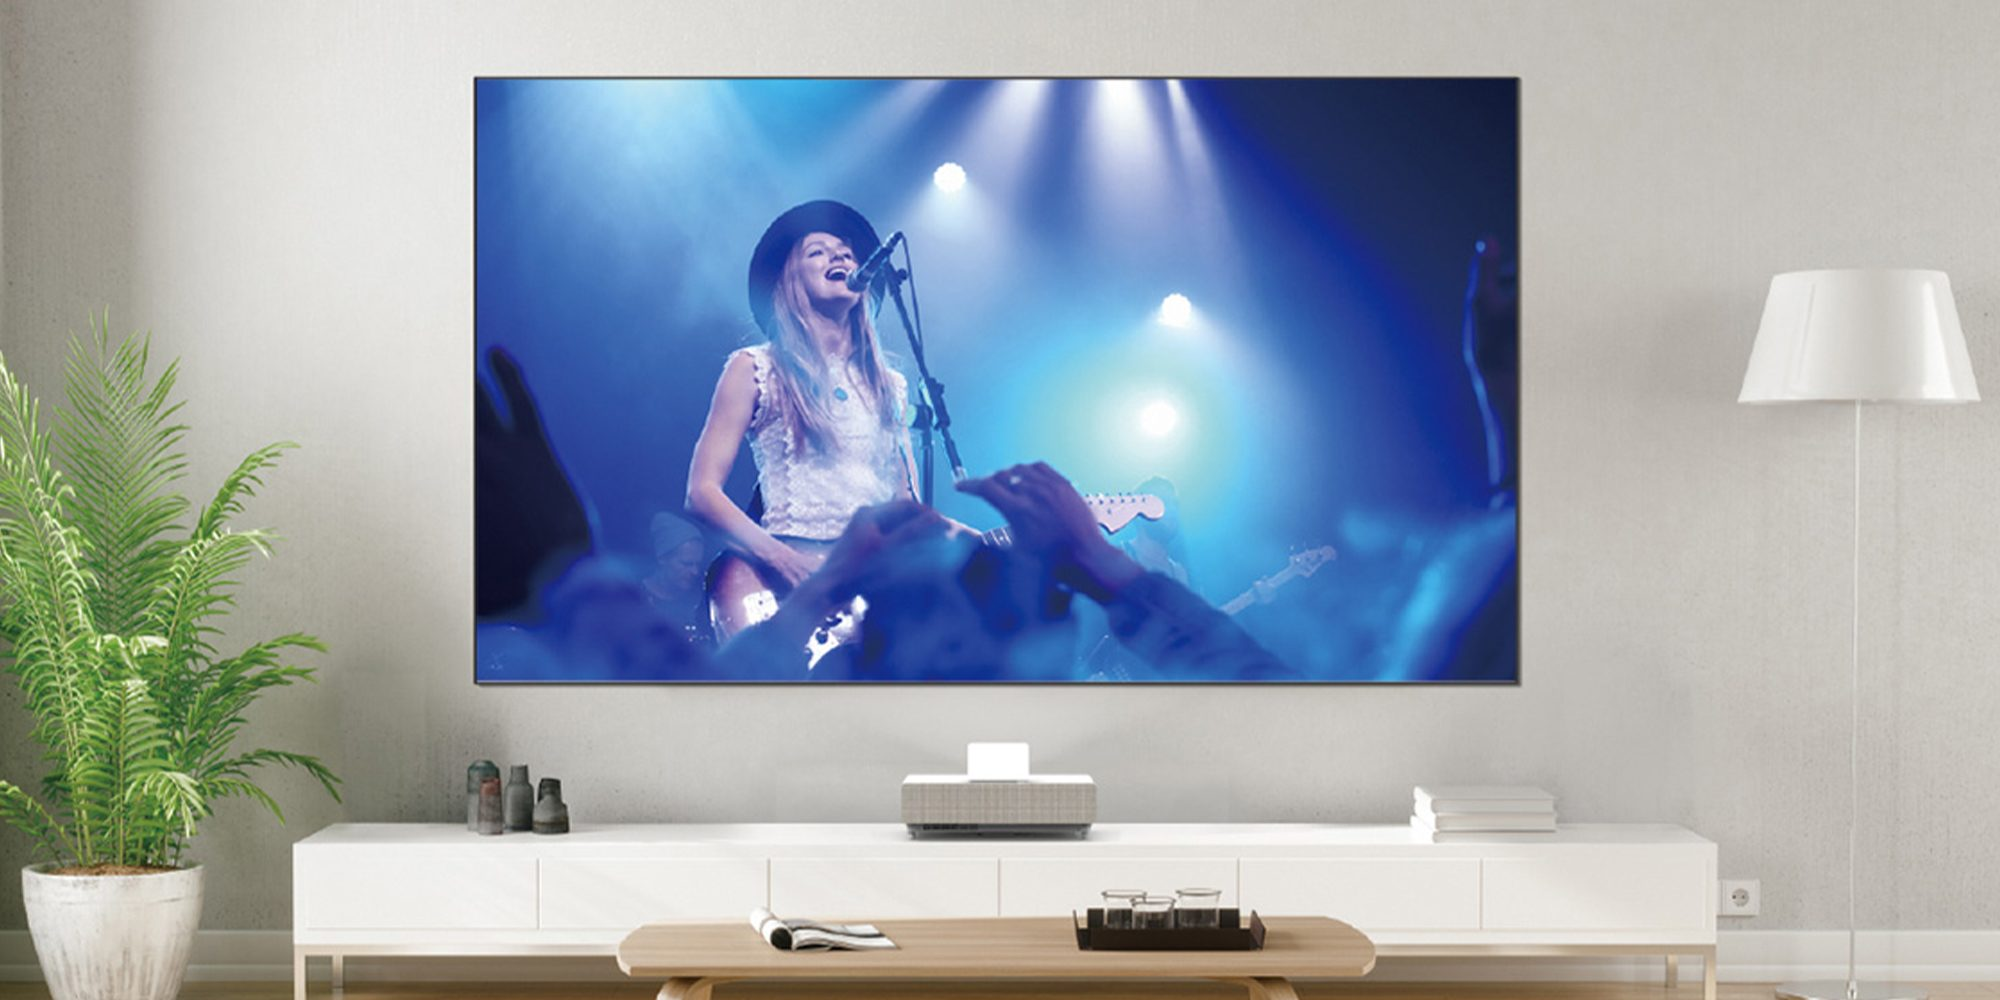 Epson unveils $5,000, Android TV-powered 4K laser projector